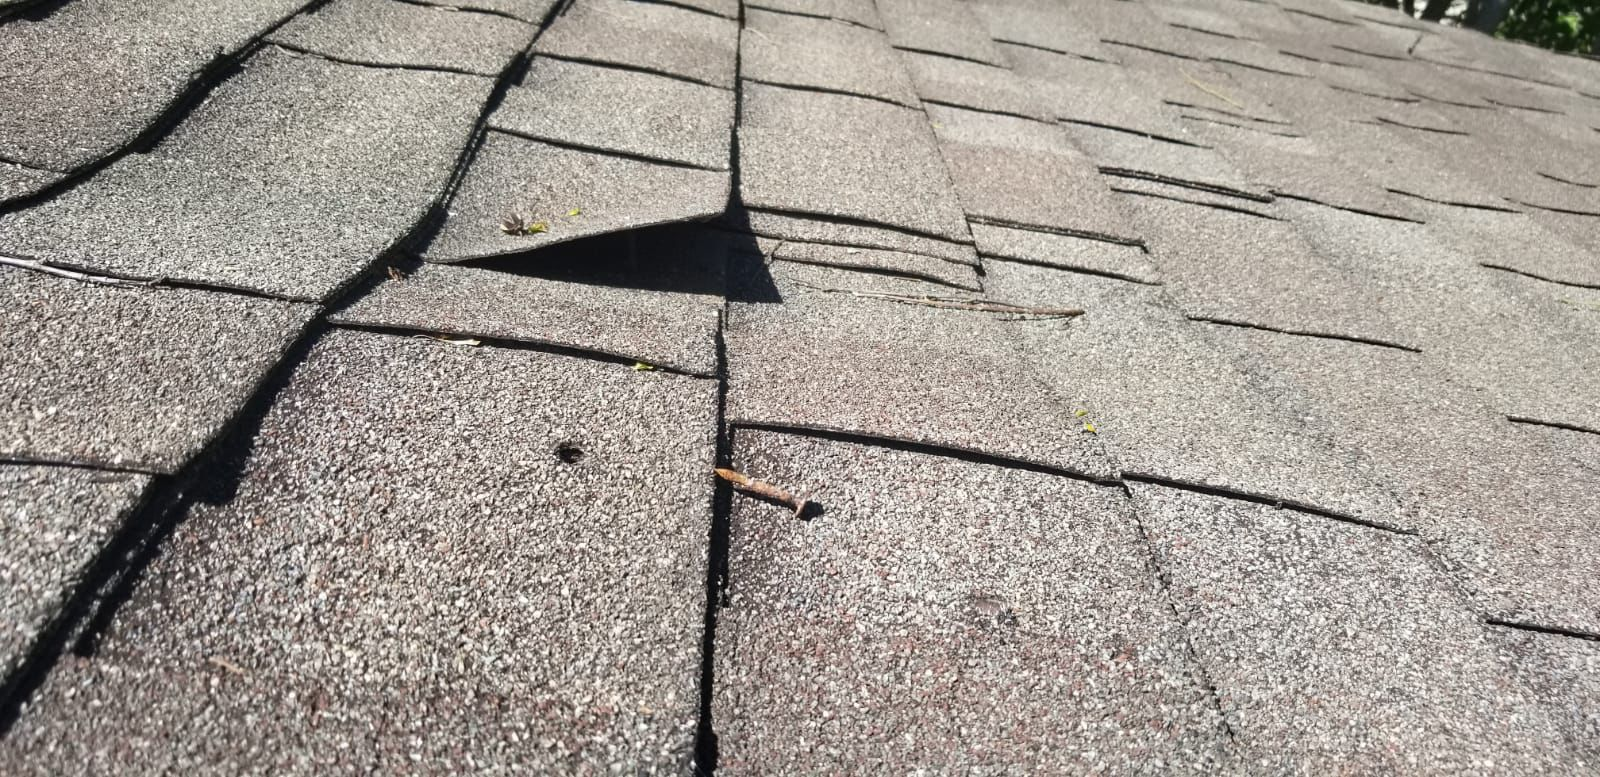 Does Your Roof Look Like This Popping Nails Can Make Your Roof Susceptible To Leaks And Other Damage Call 205 810 1 Leak Repair Roof Repair Roofing Services